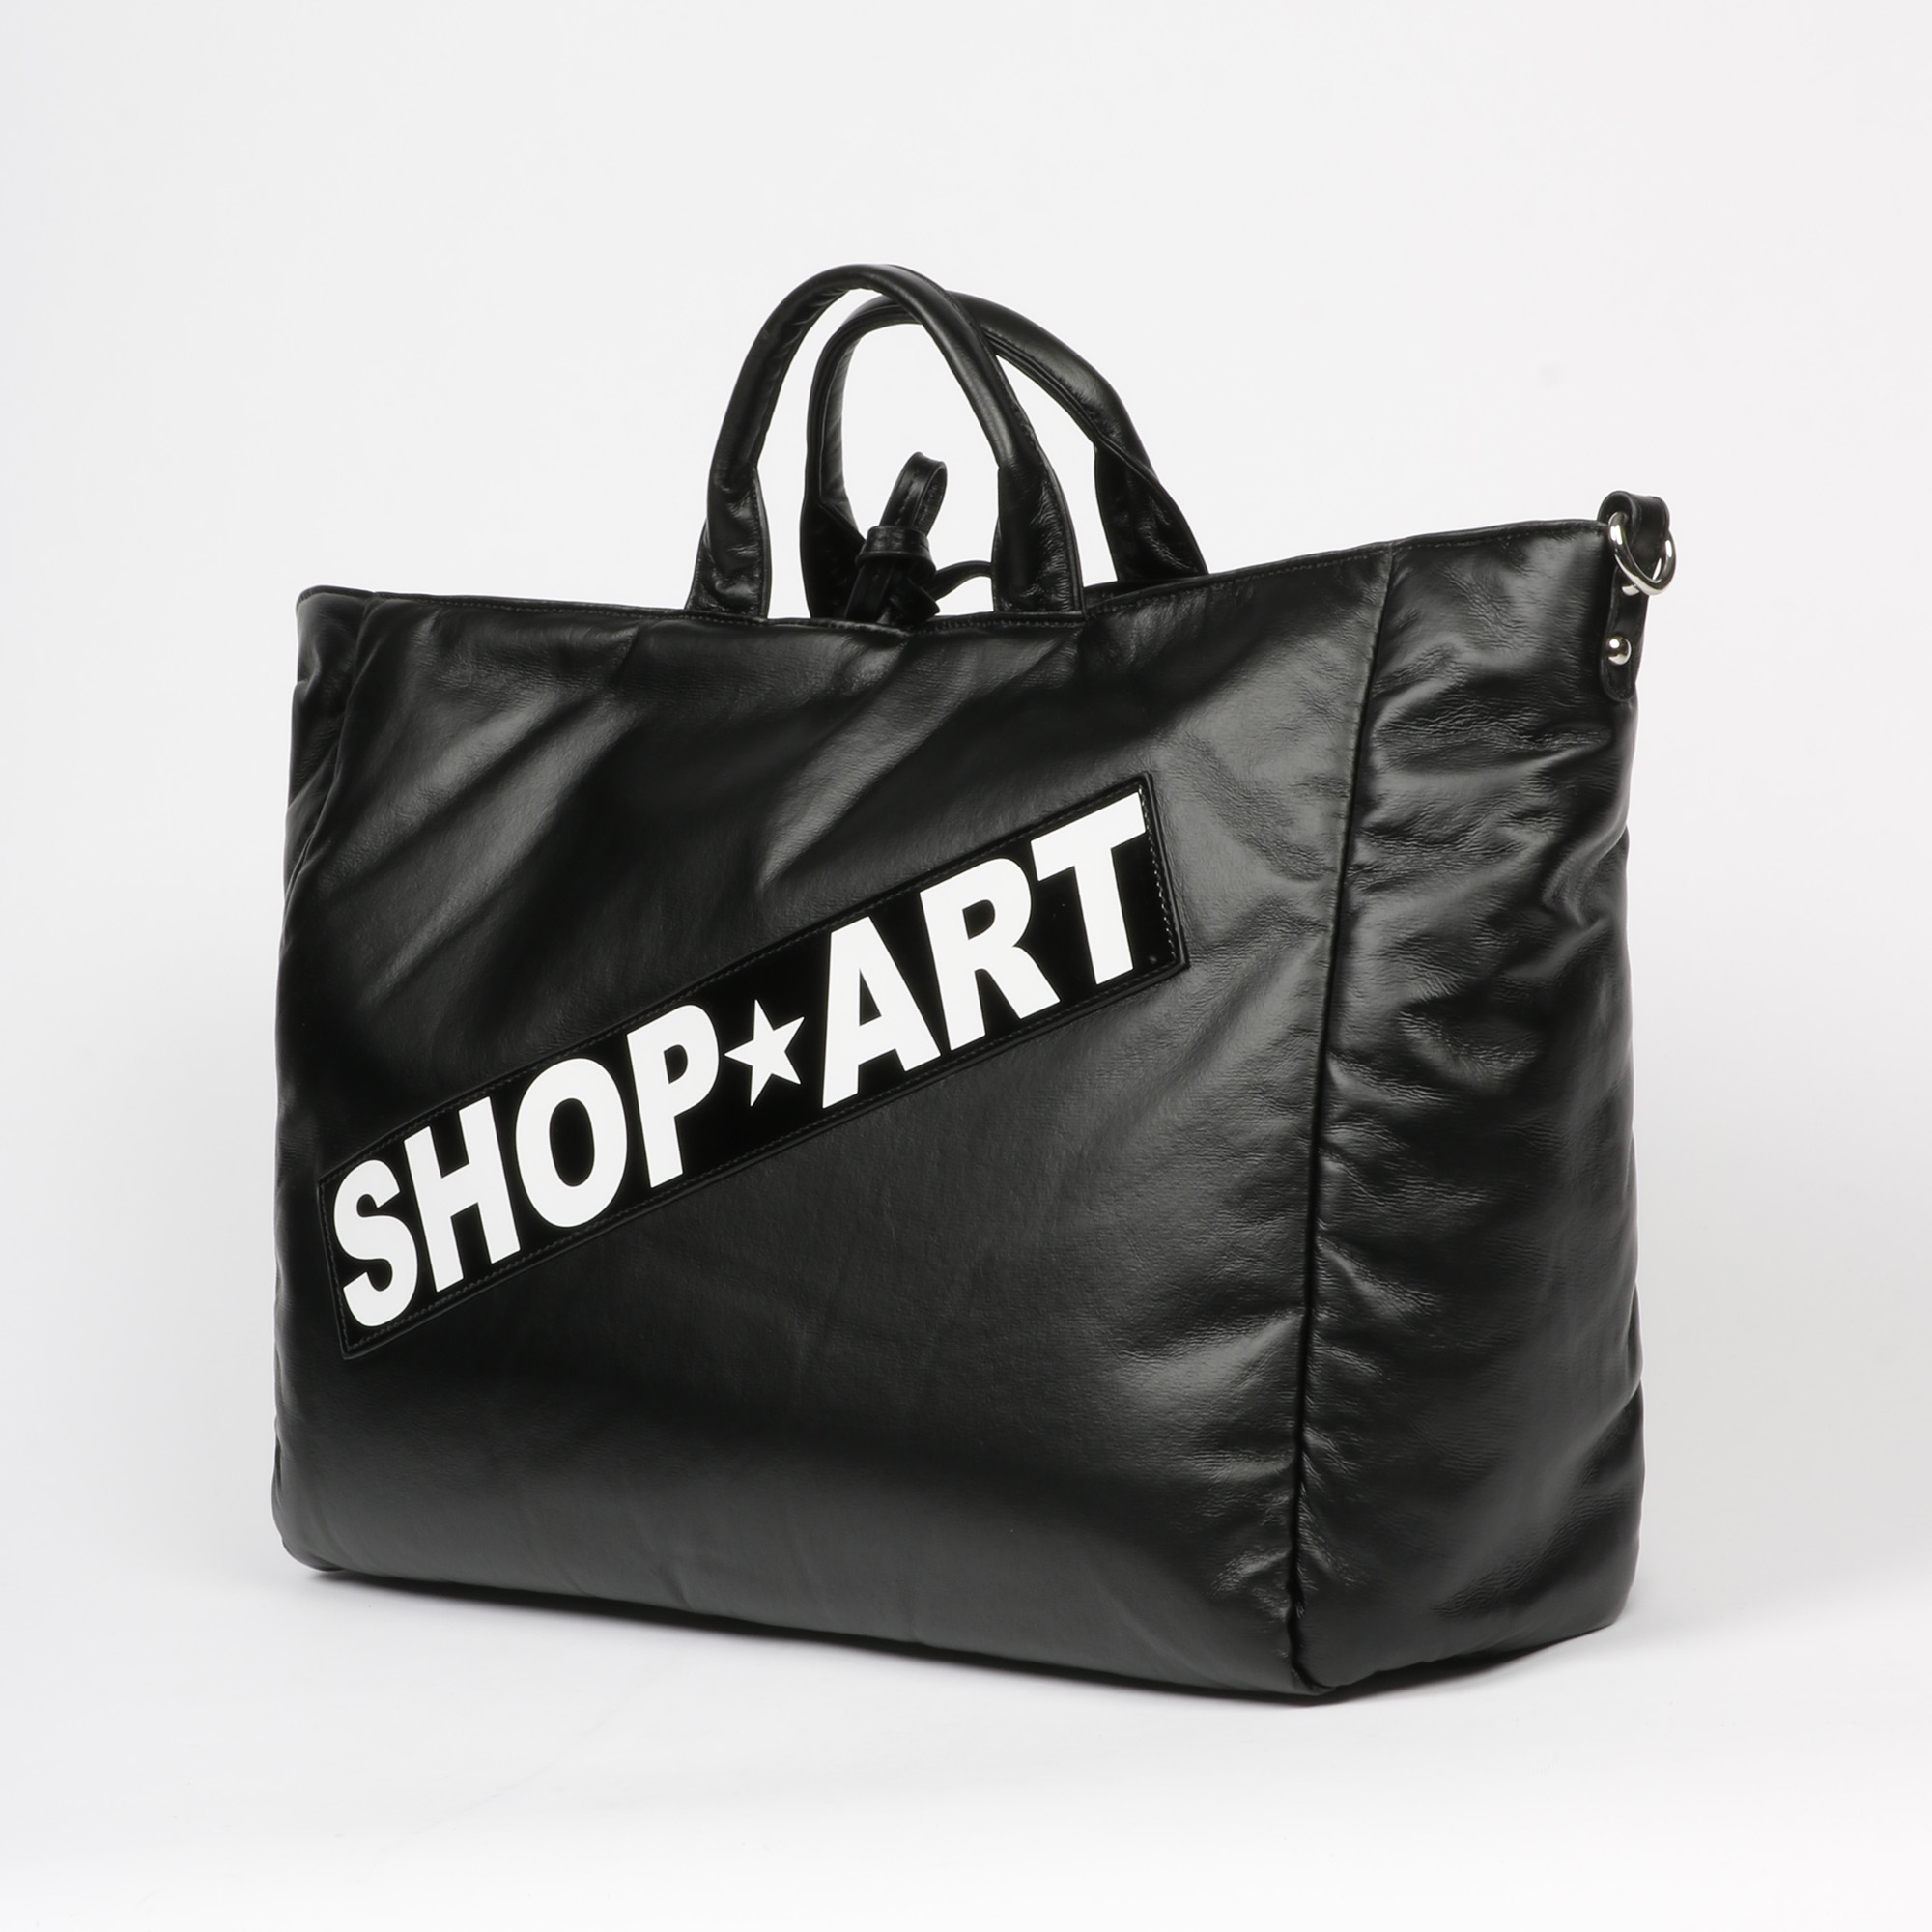 Maxi shopping bag